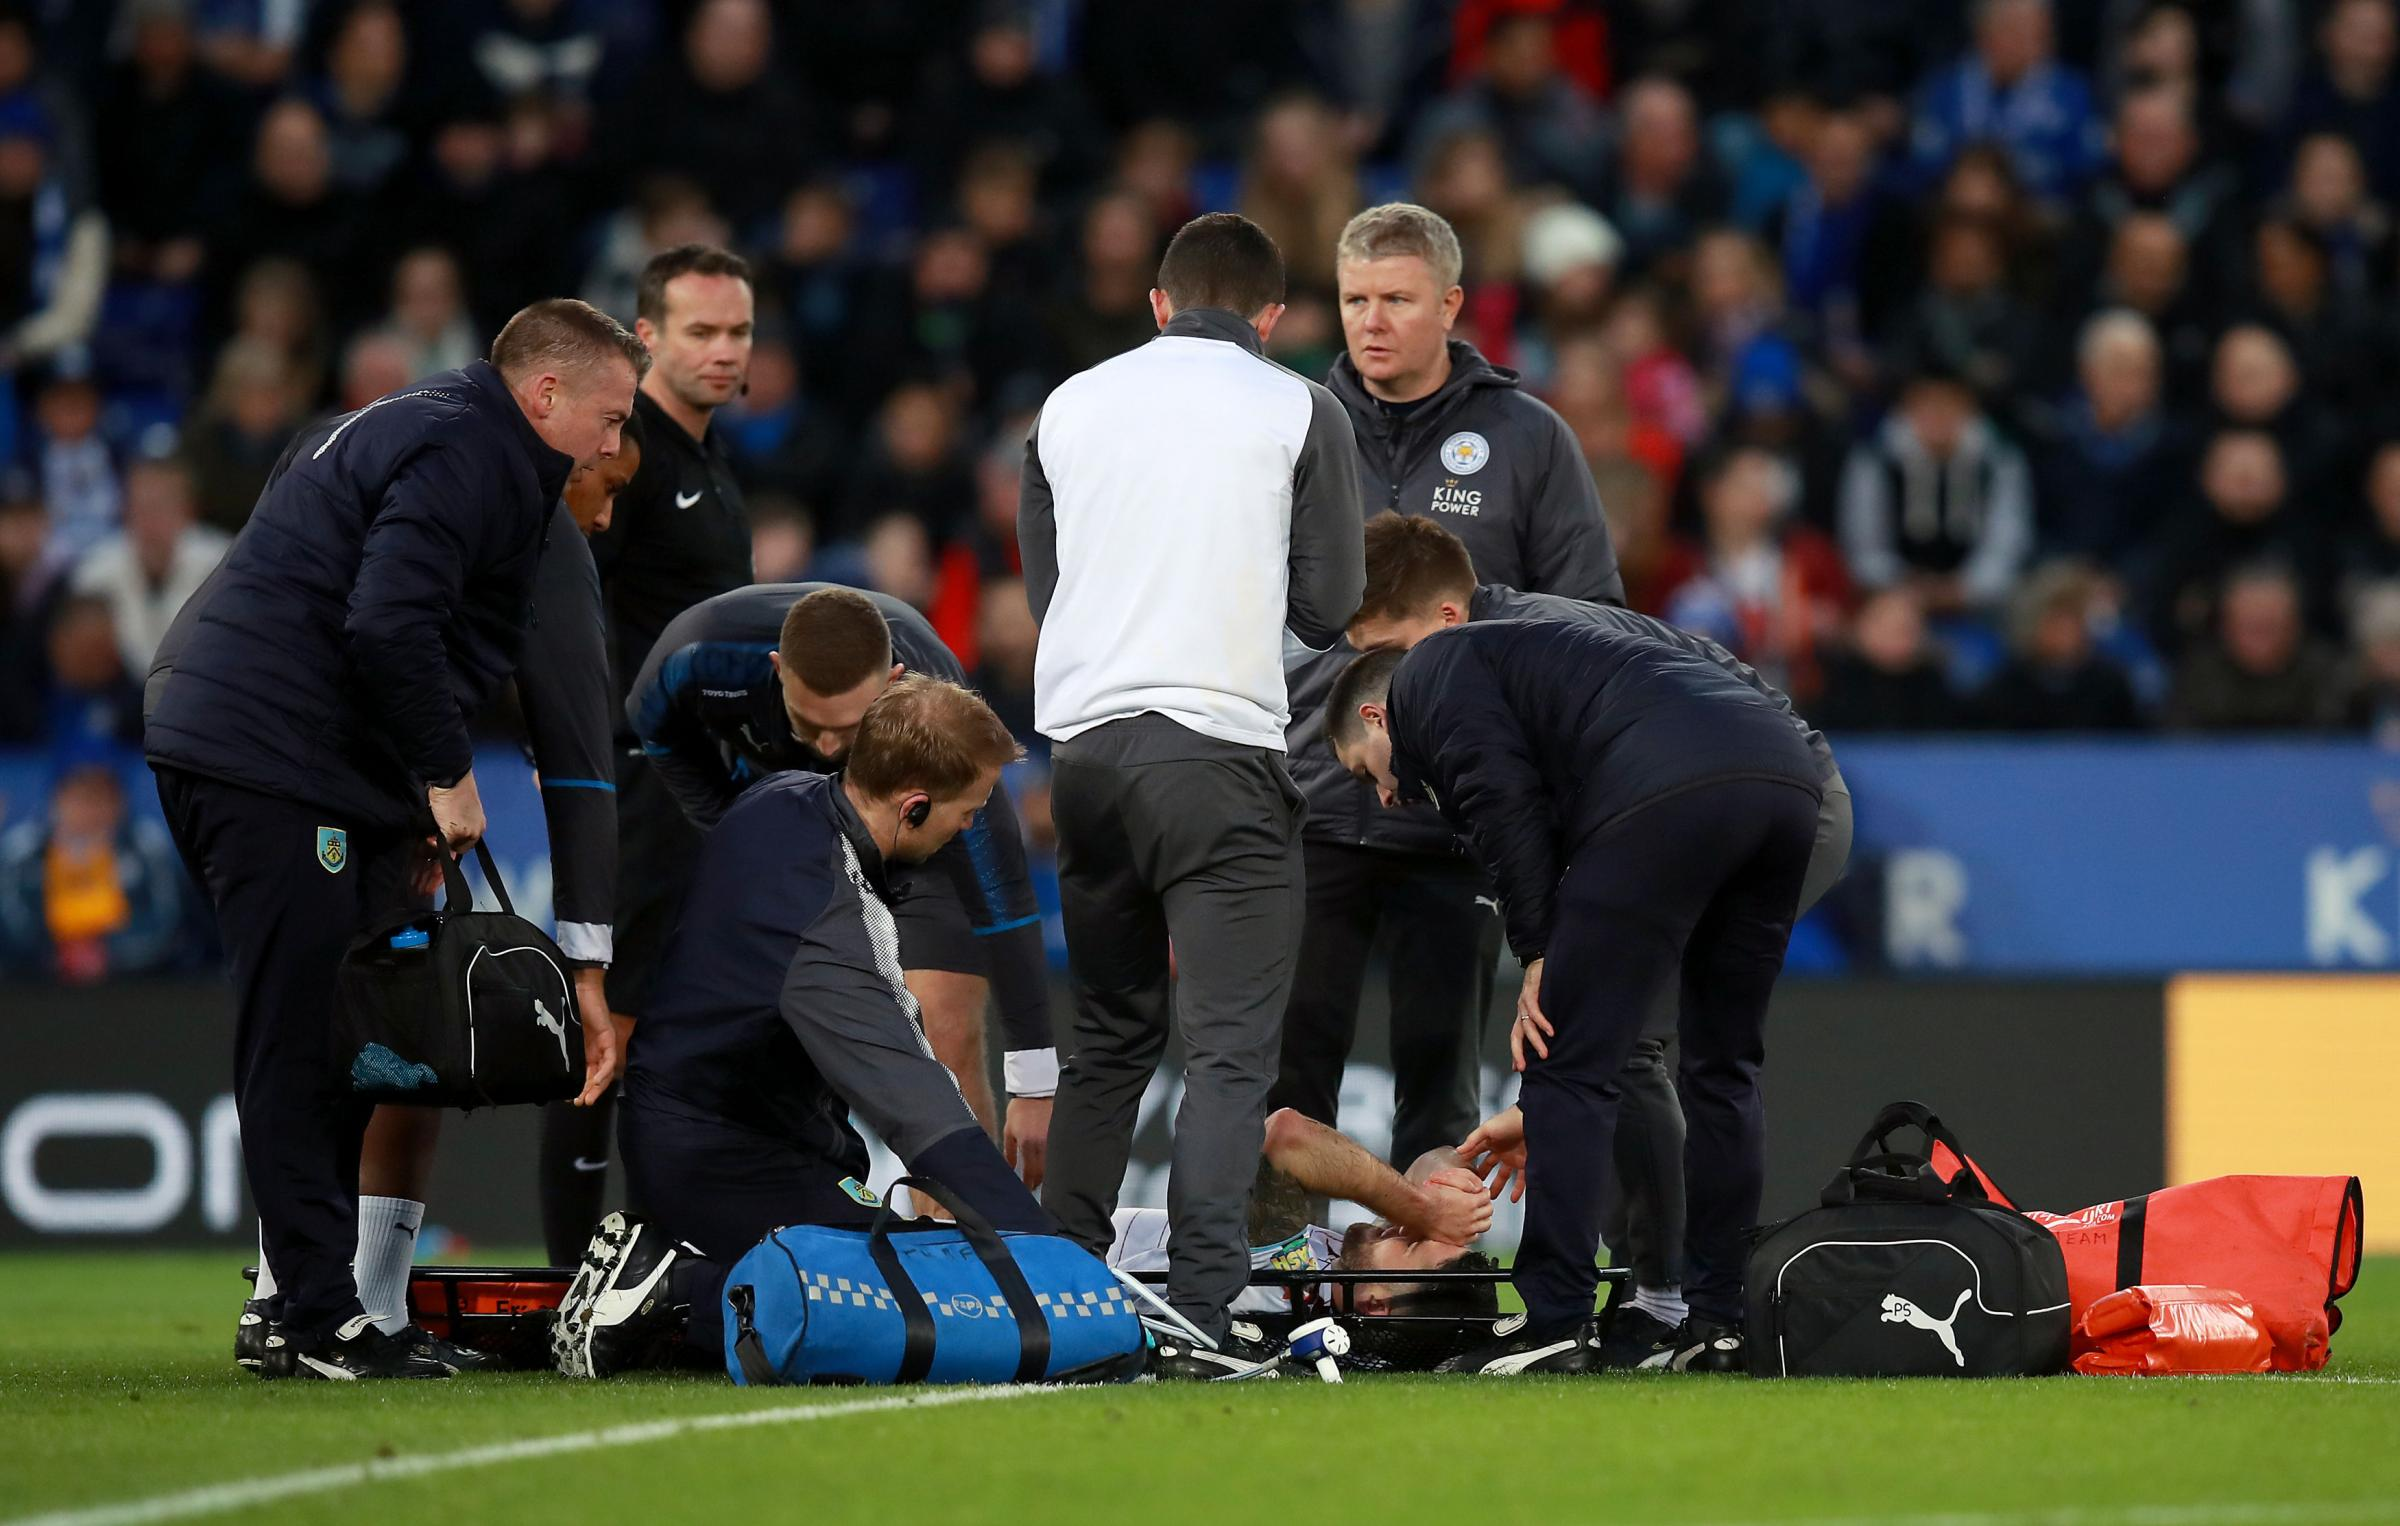 Robbie Brady was stretchered off after injuring his knee